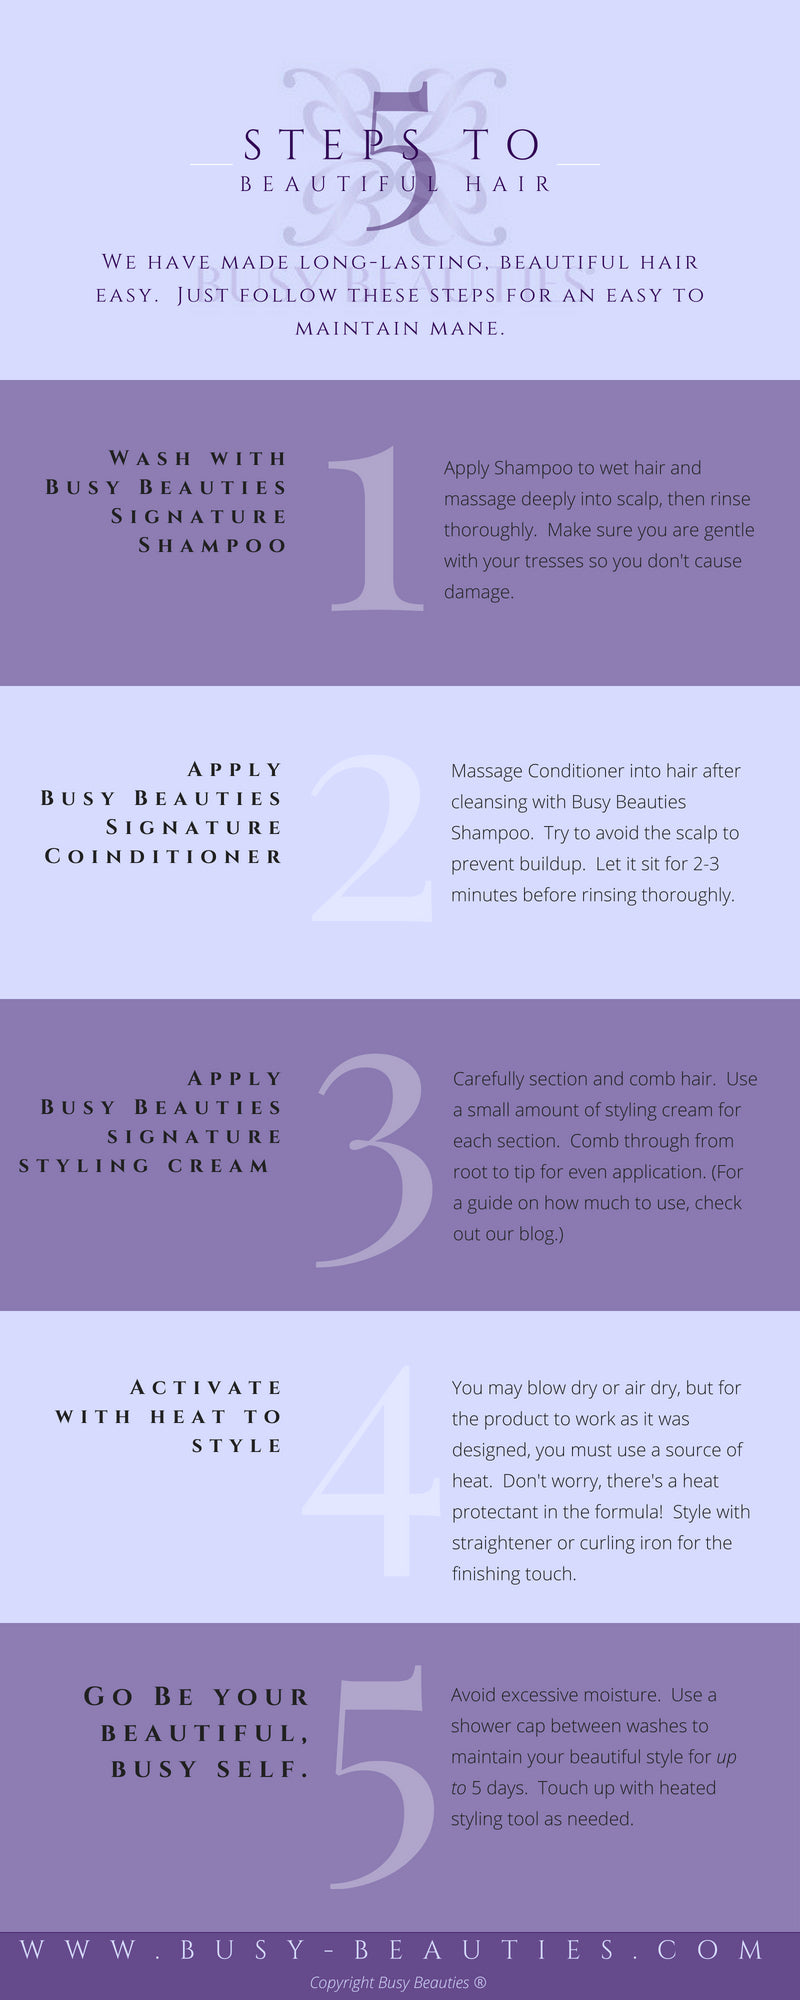 Infographic - 5 Steps to Beautiful Hair with Busy Beauties